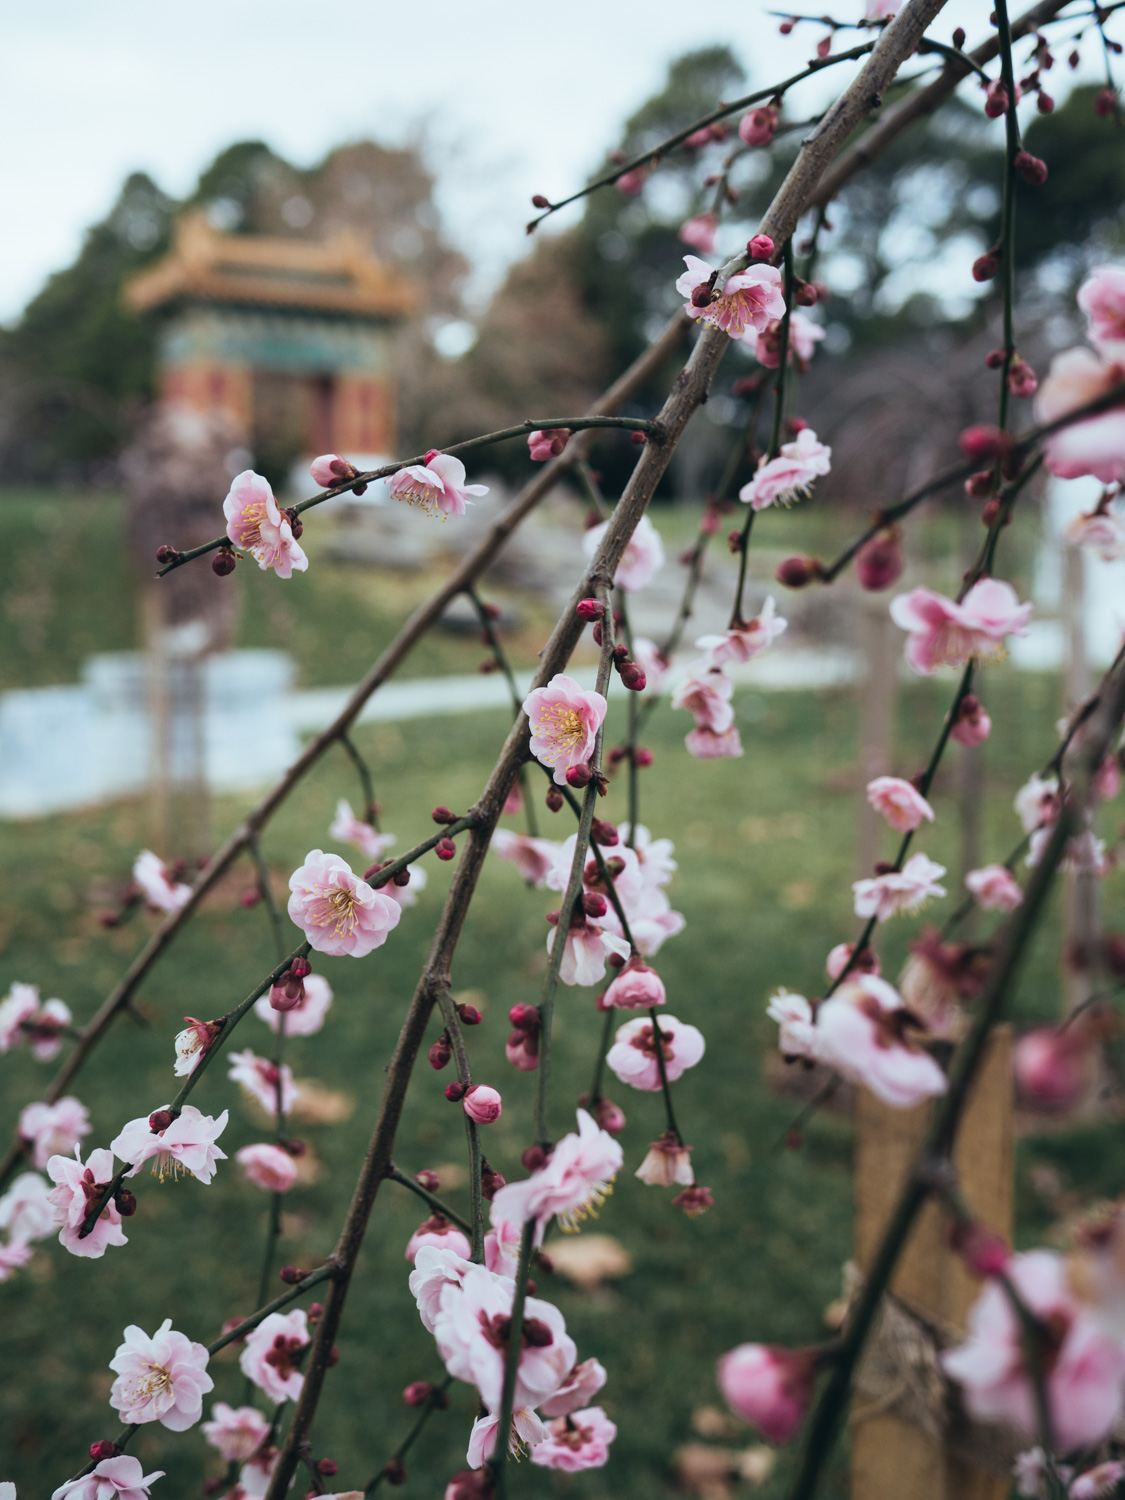 Chinese garden, Canberra ACT